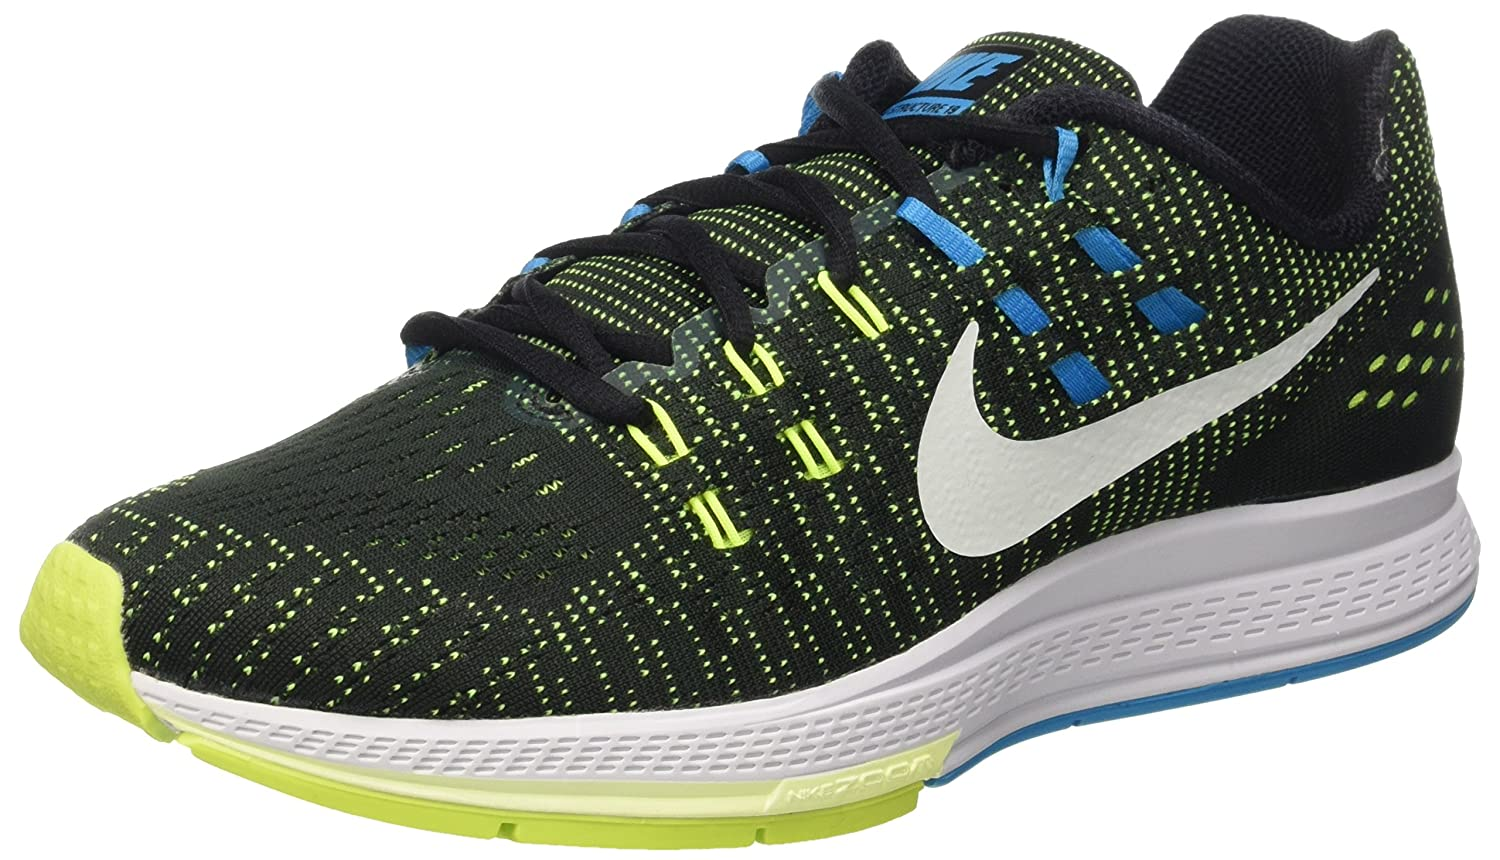 NIKE Mens Air Zoom Structure 19 Running Shoes B015T0AKI2 10 D(M) US|Black/Volt/Blue Lagoon/White